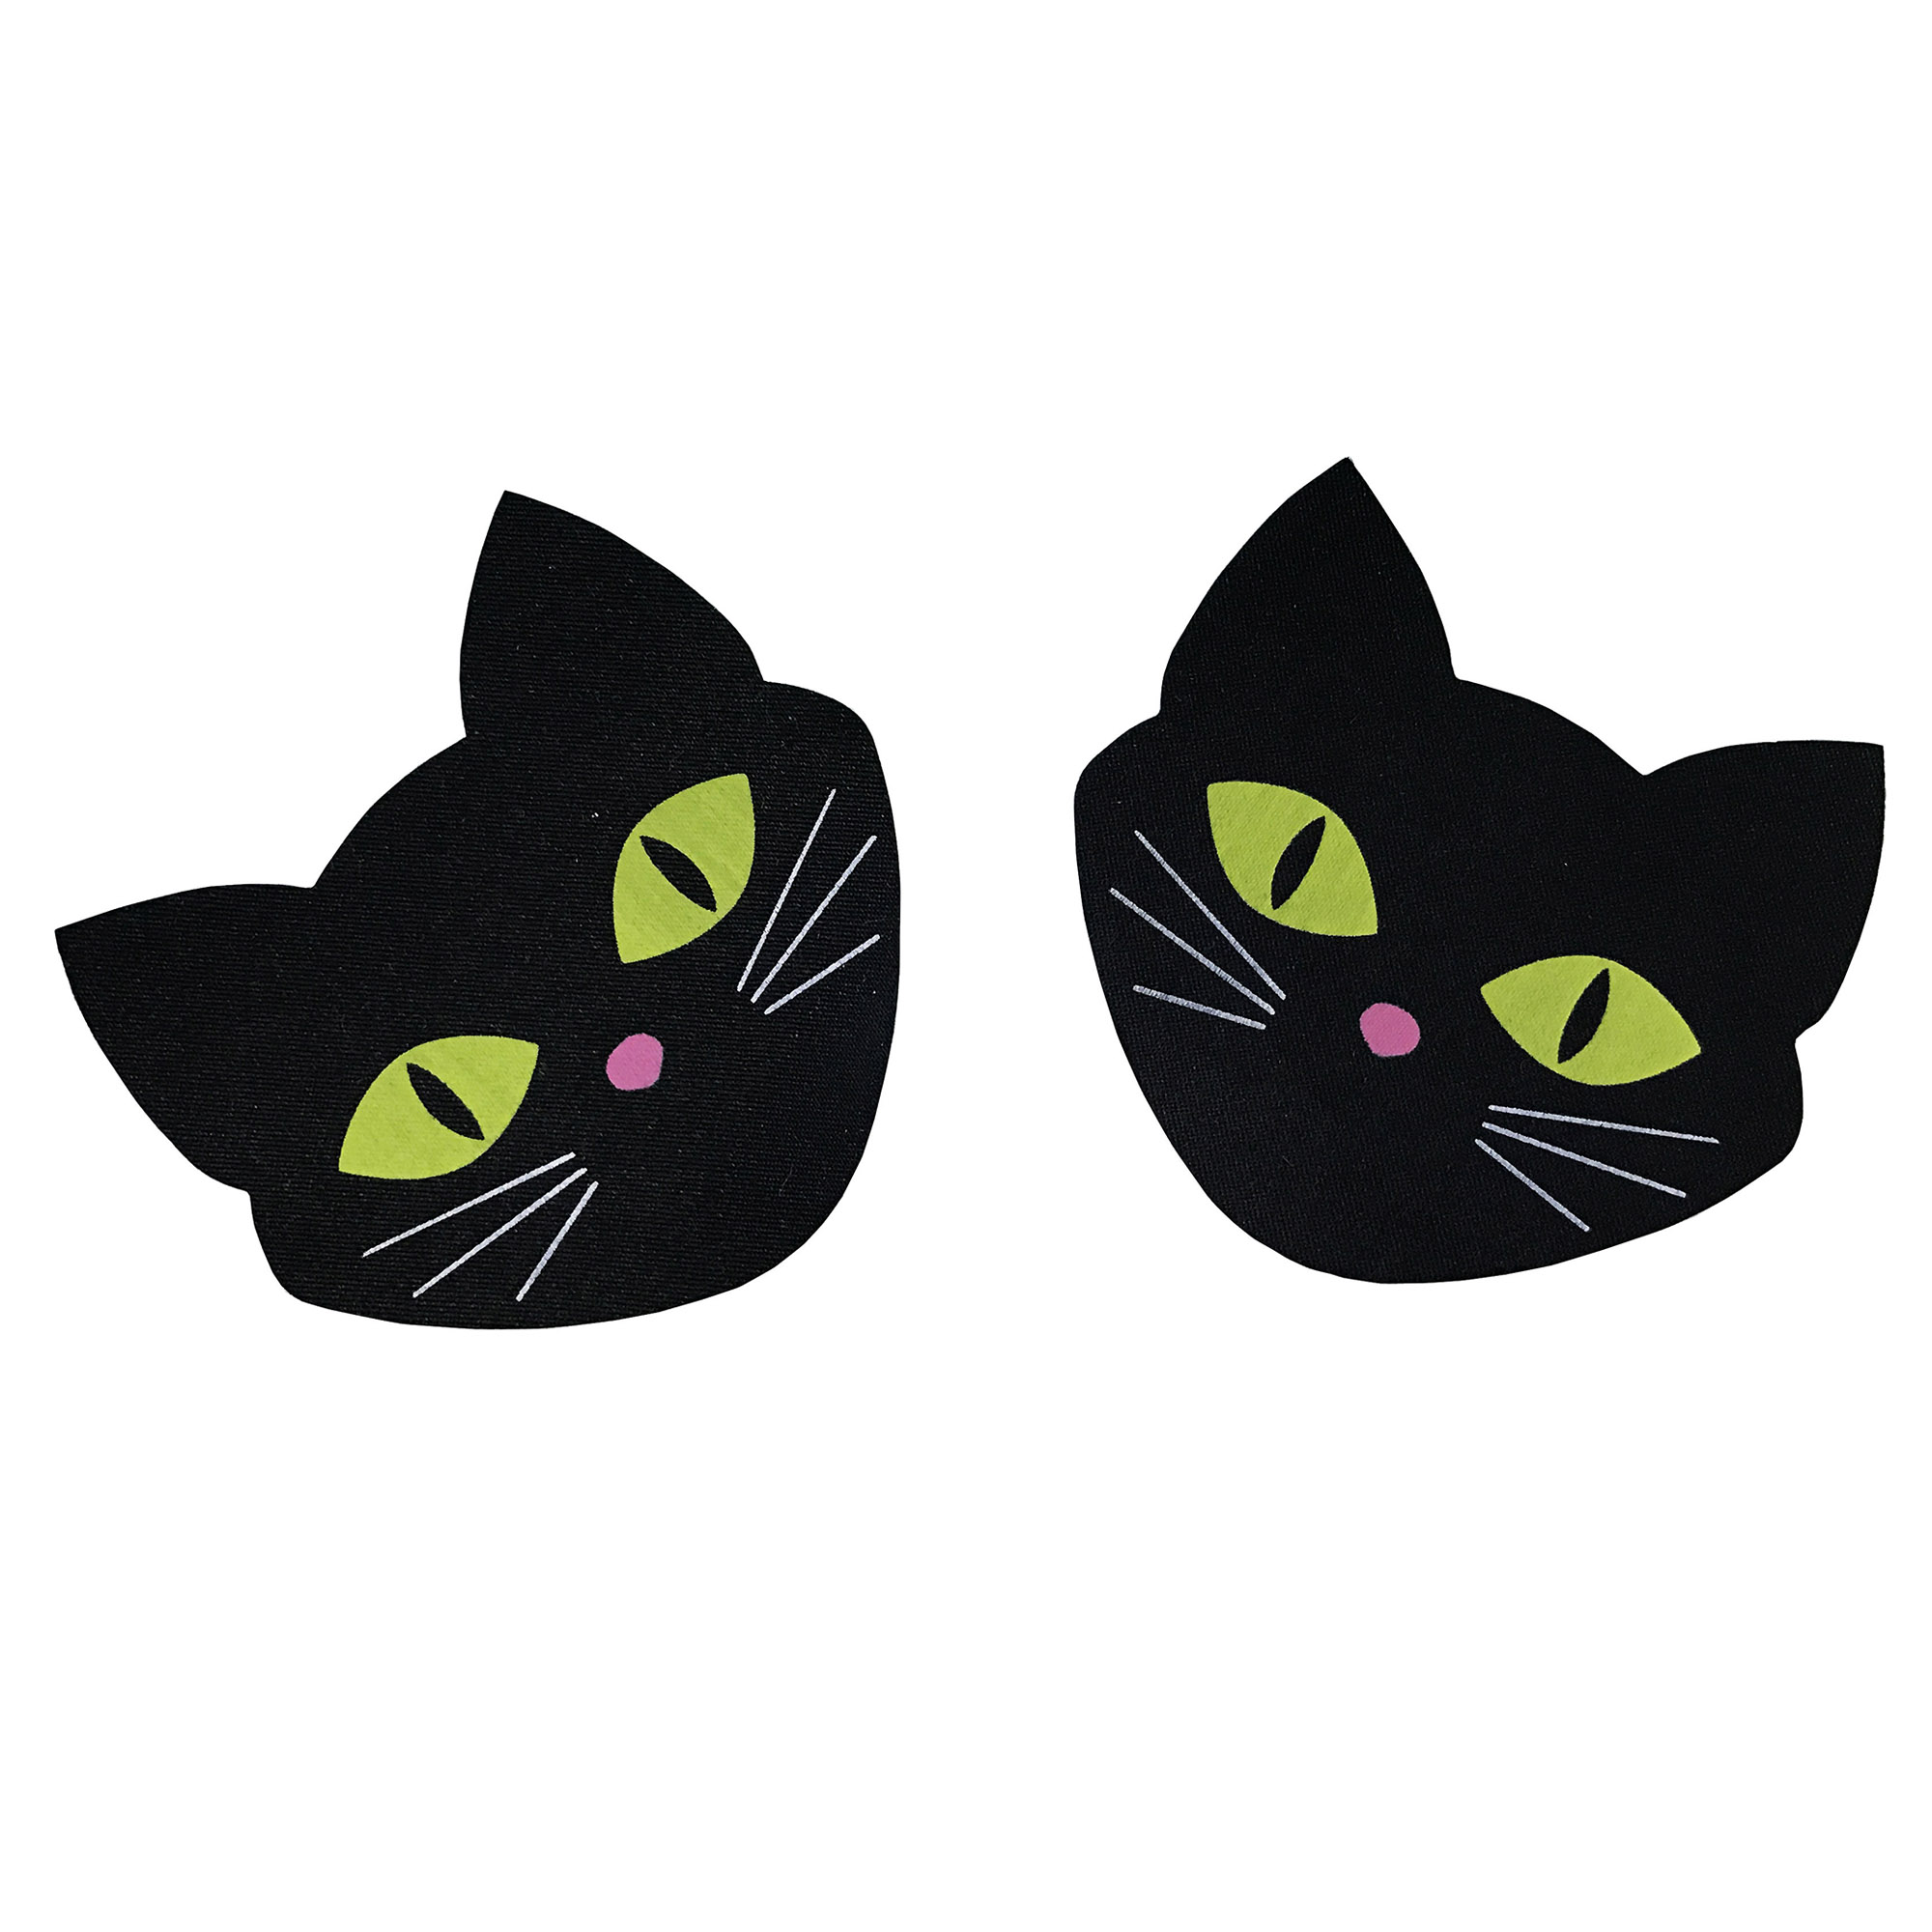 NEW 1Pair(2Pcs)Luminous Cat Breast Petals Stickers Nipple Cover Invisible Bra Pad Pastie Disposable Self Adhesive Breast Pasties